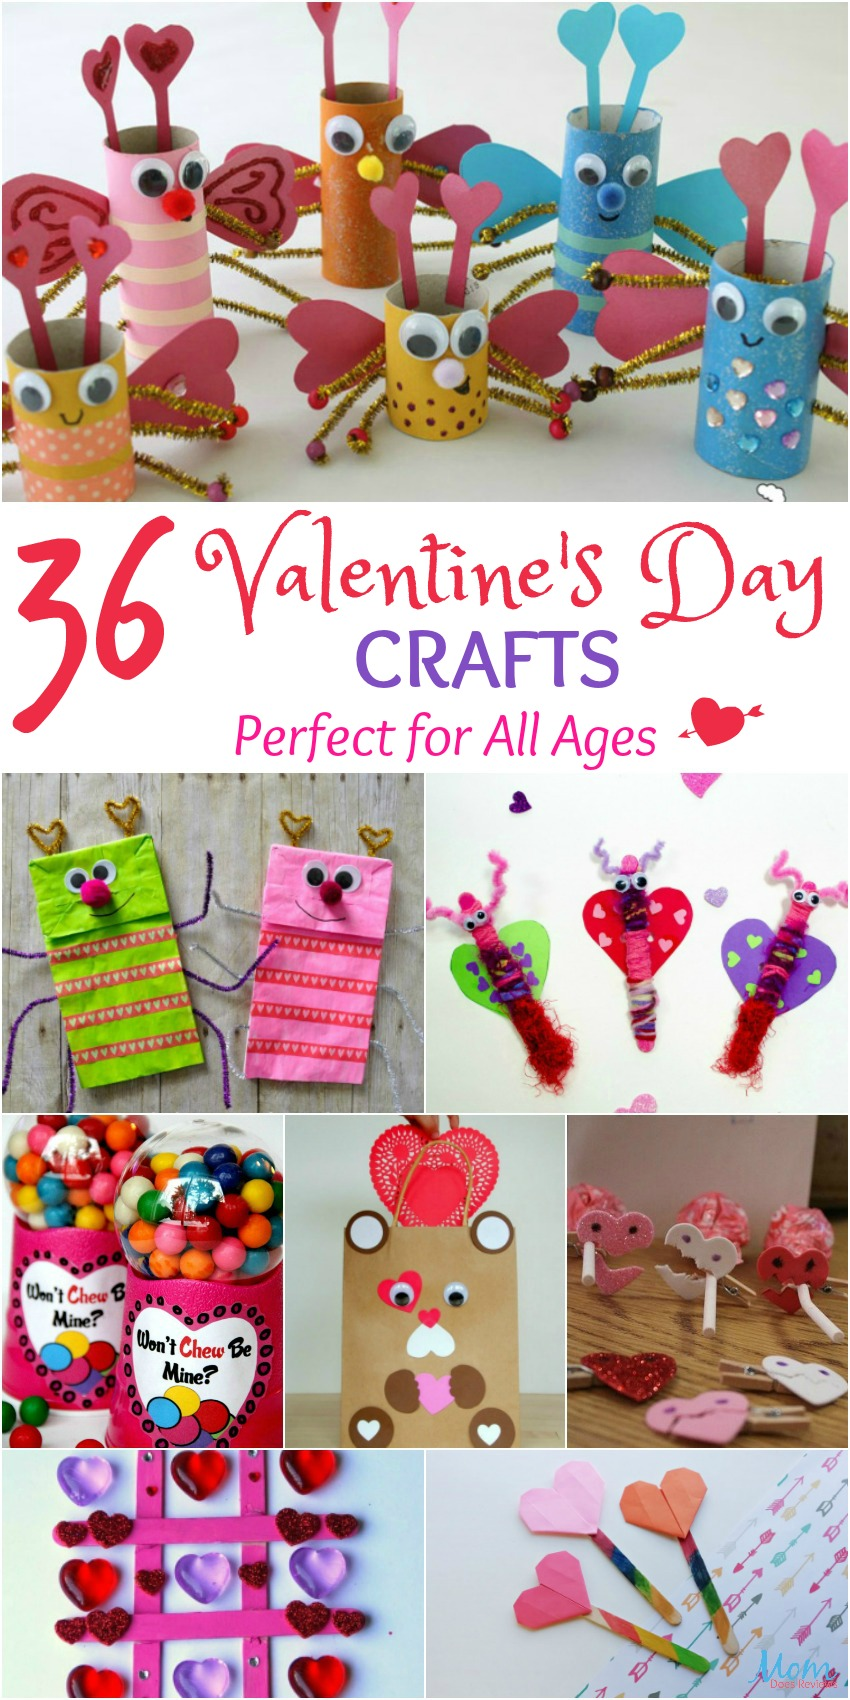 36 Valentine's Day Crafts Perfect for All Ages #Sweet2019 #crafts #valentinesday #diy #funstuff